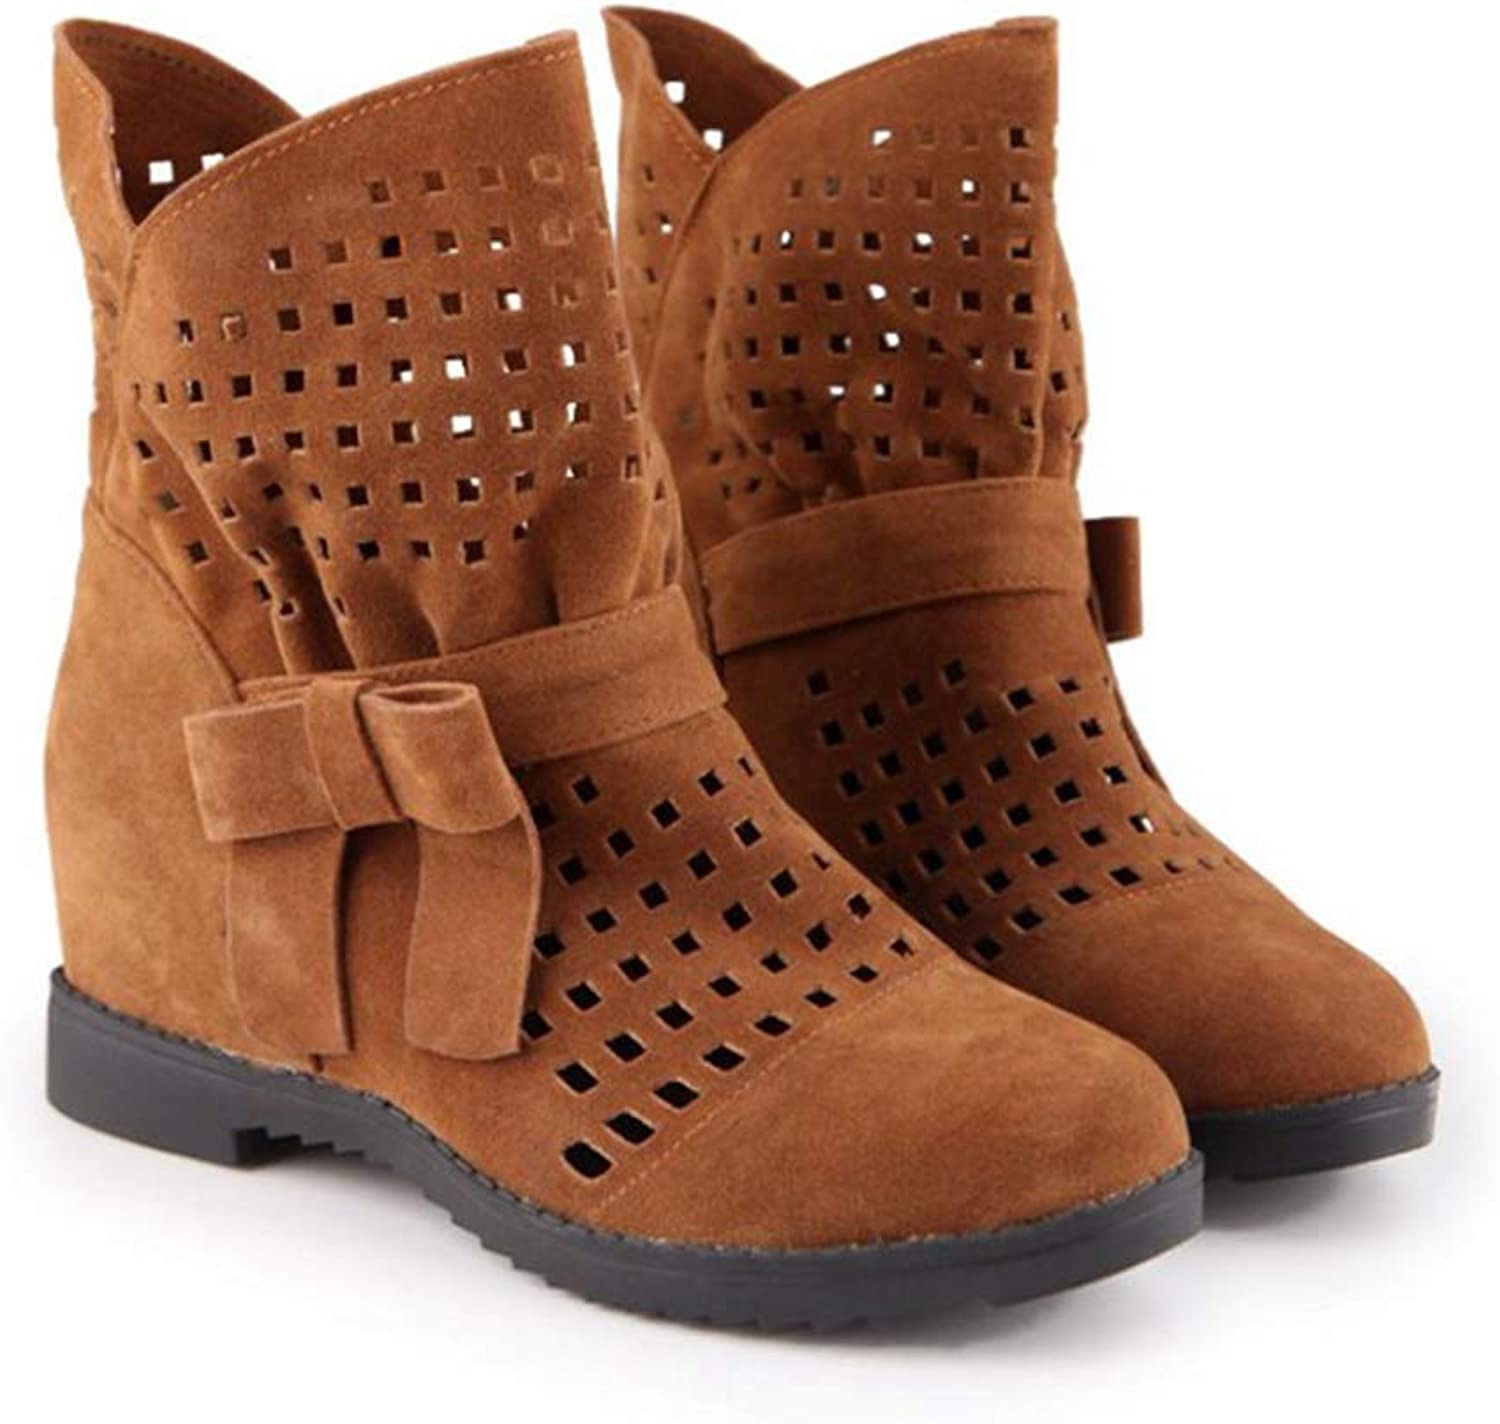 T-JULY Autumn Spring Women Platform Hidden Ankle Boots Slip on Botas Feminino women Cut Out Solid Butterfly-Knot Boots